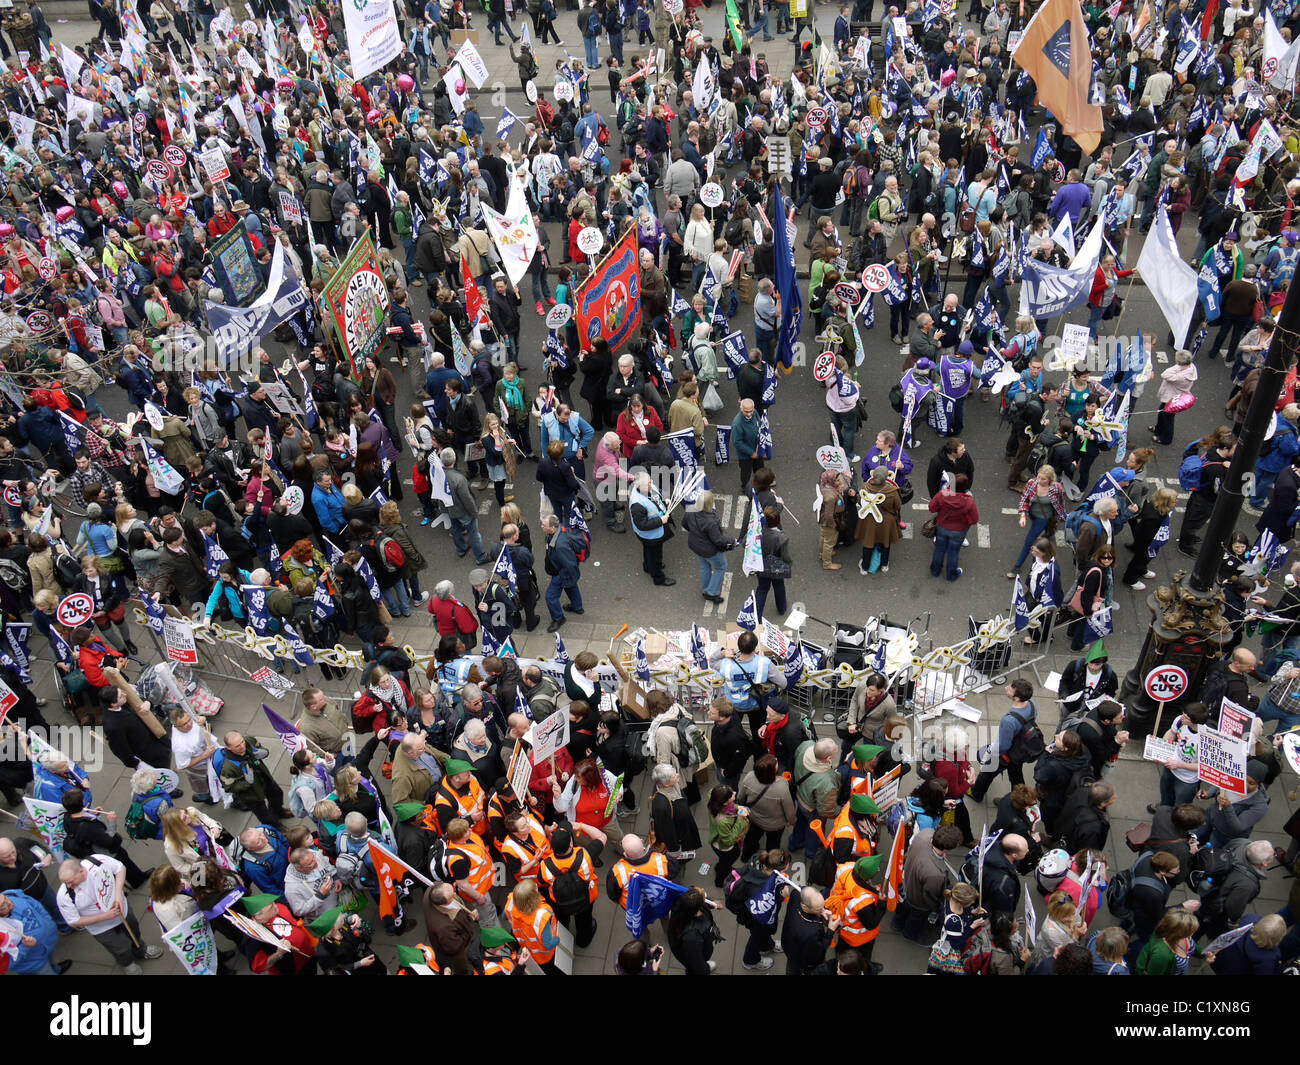 tuc anti cuts march anti-cuts march 26 protestors assemble for protest - Stock Image